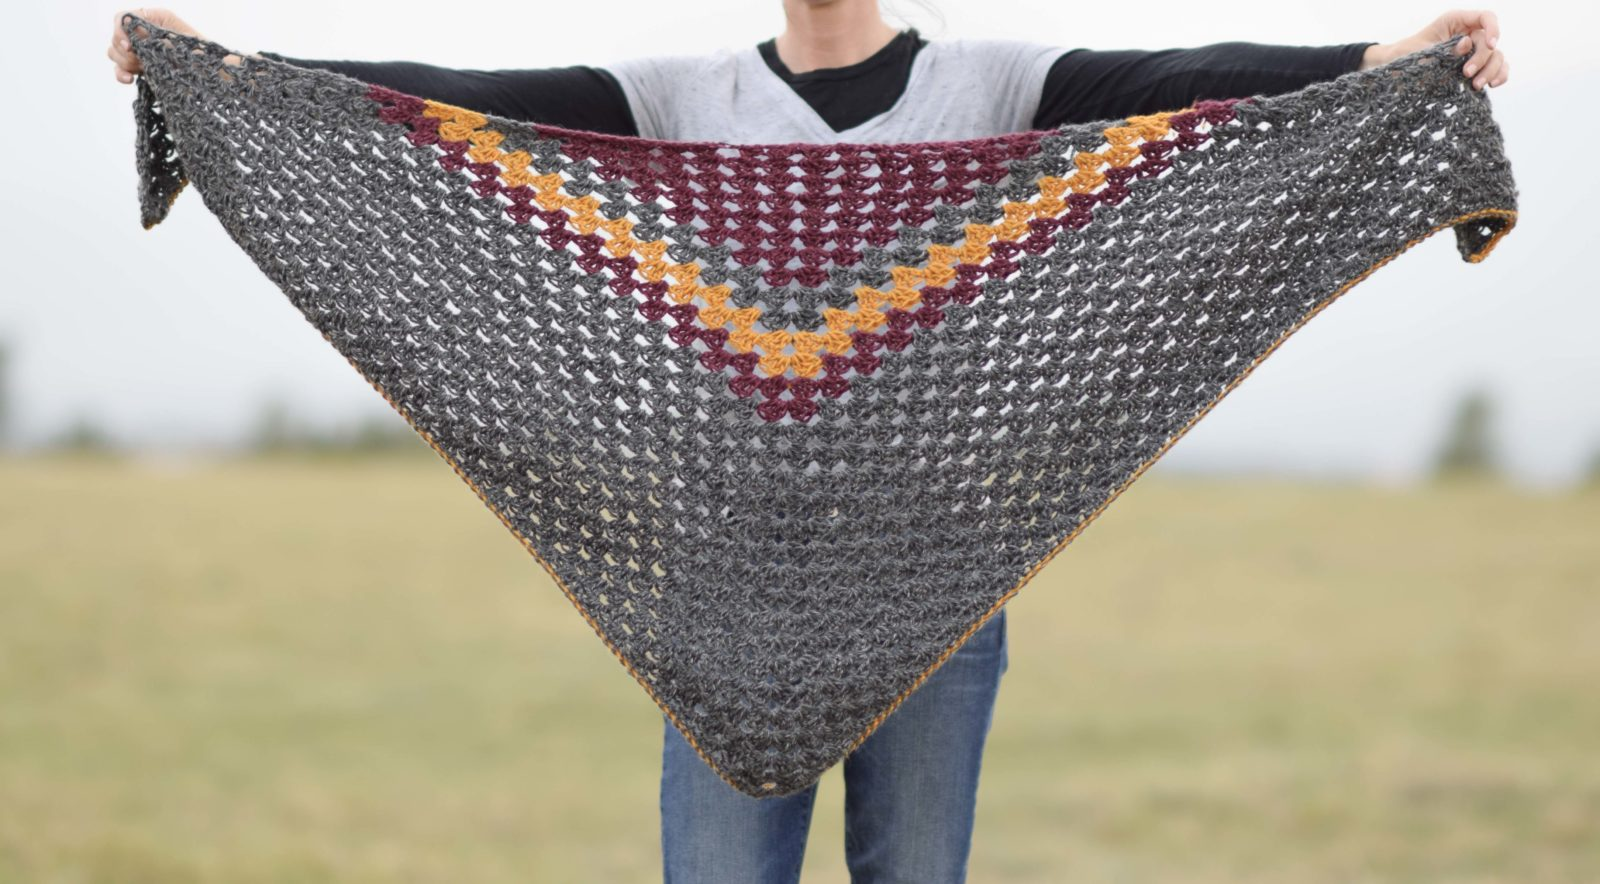 Smoky Mountains Crochet Triangle Wrap Mama In A Stitch